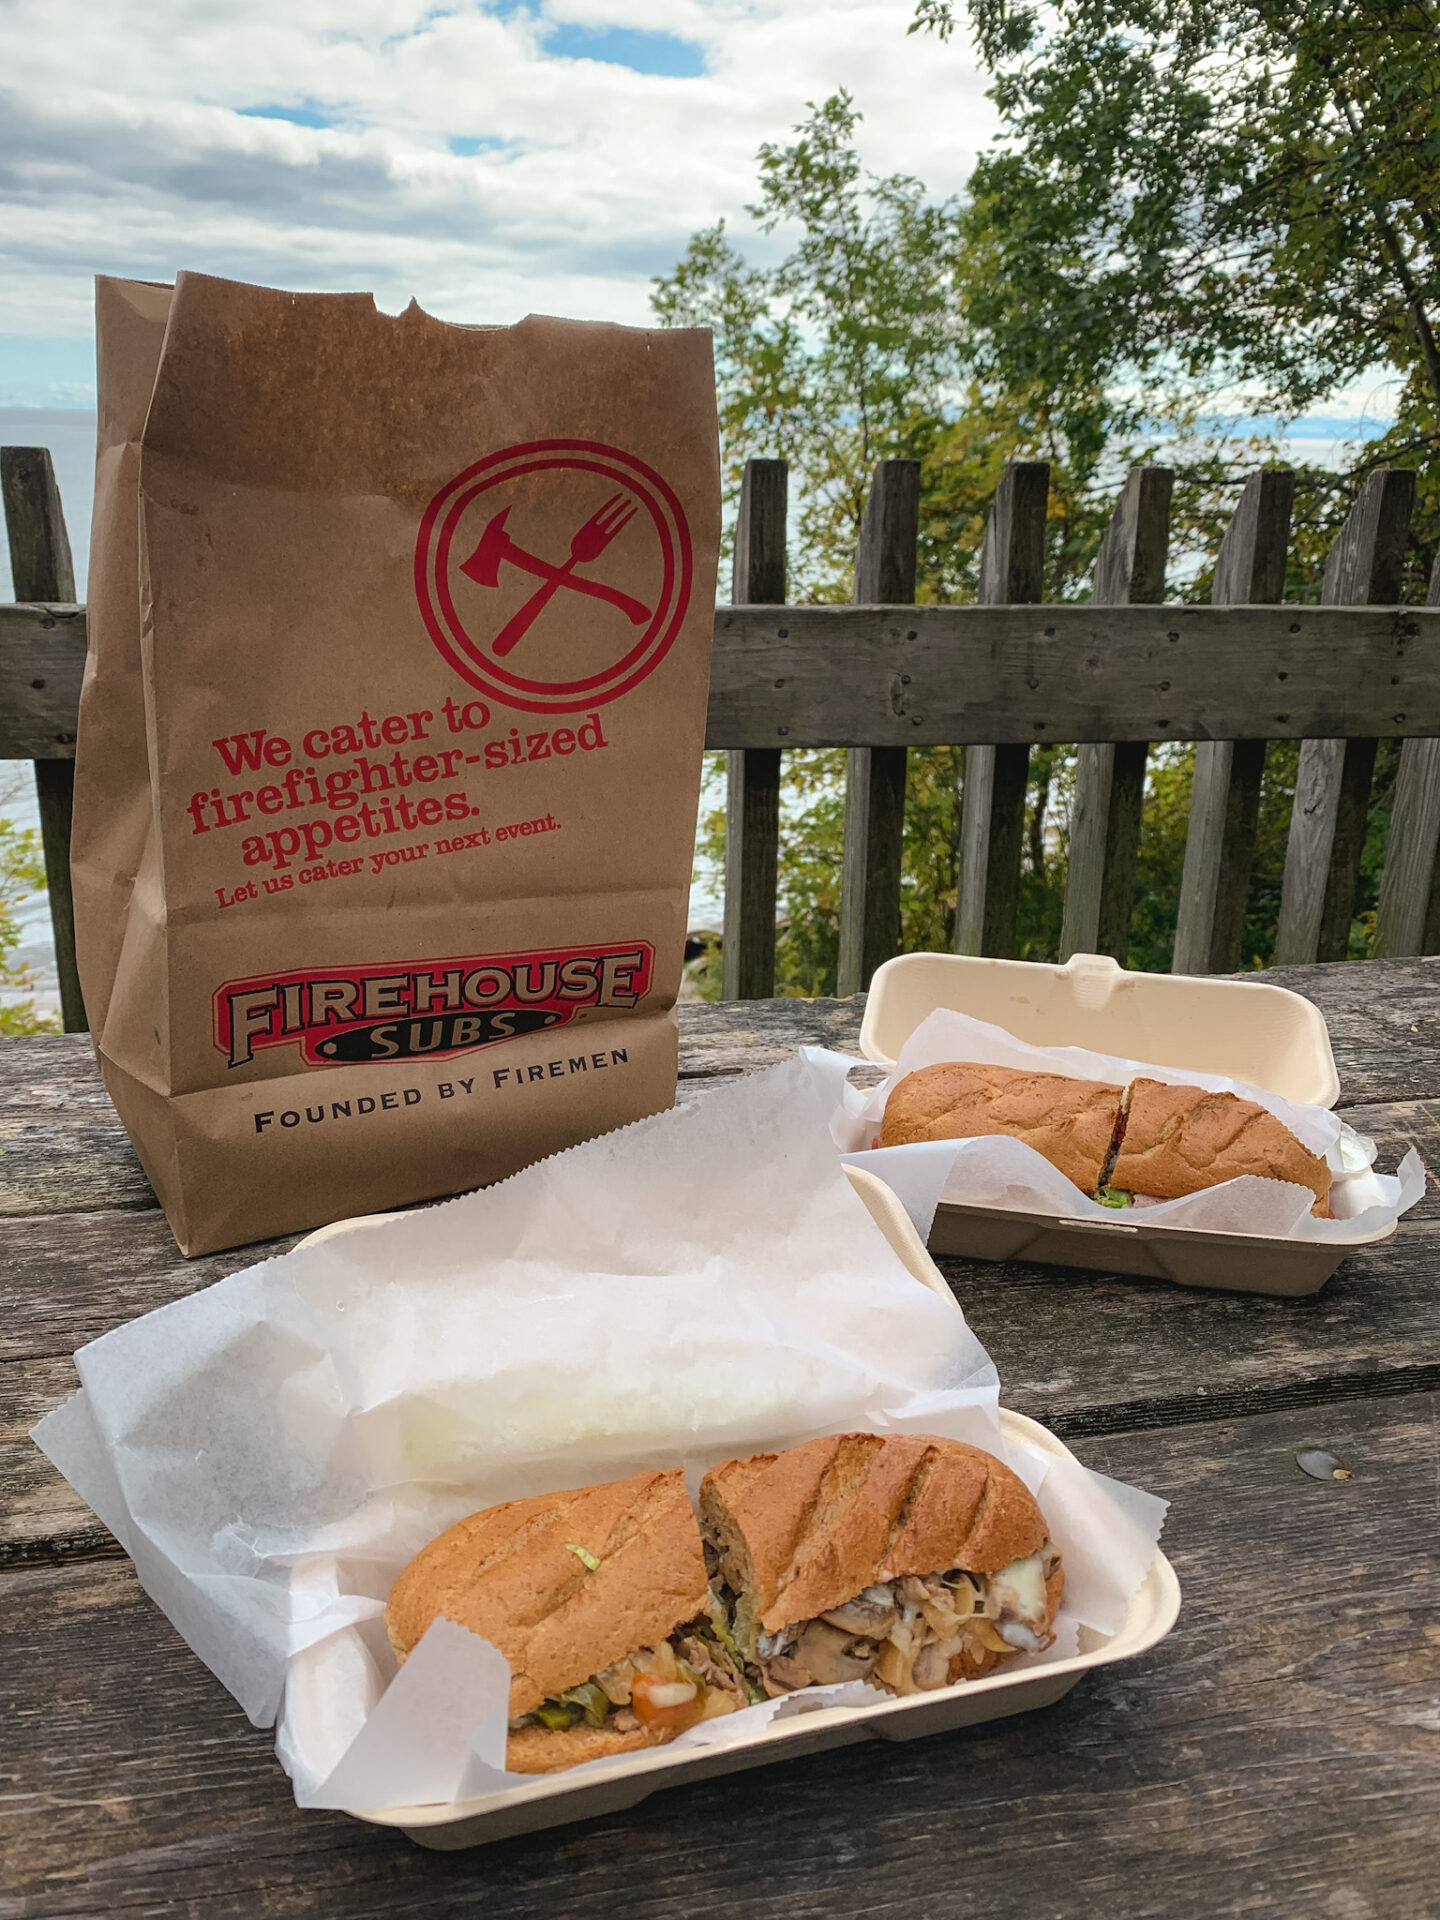 Firehouse Subs picnic at Lakeview Park in Oshawa, Ontario